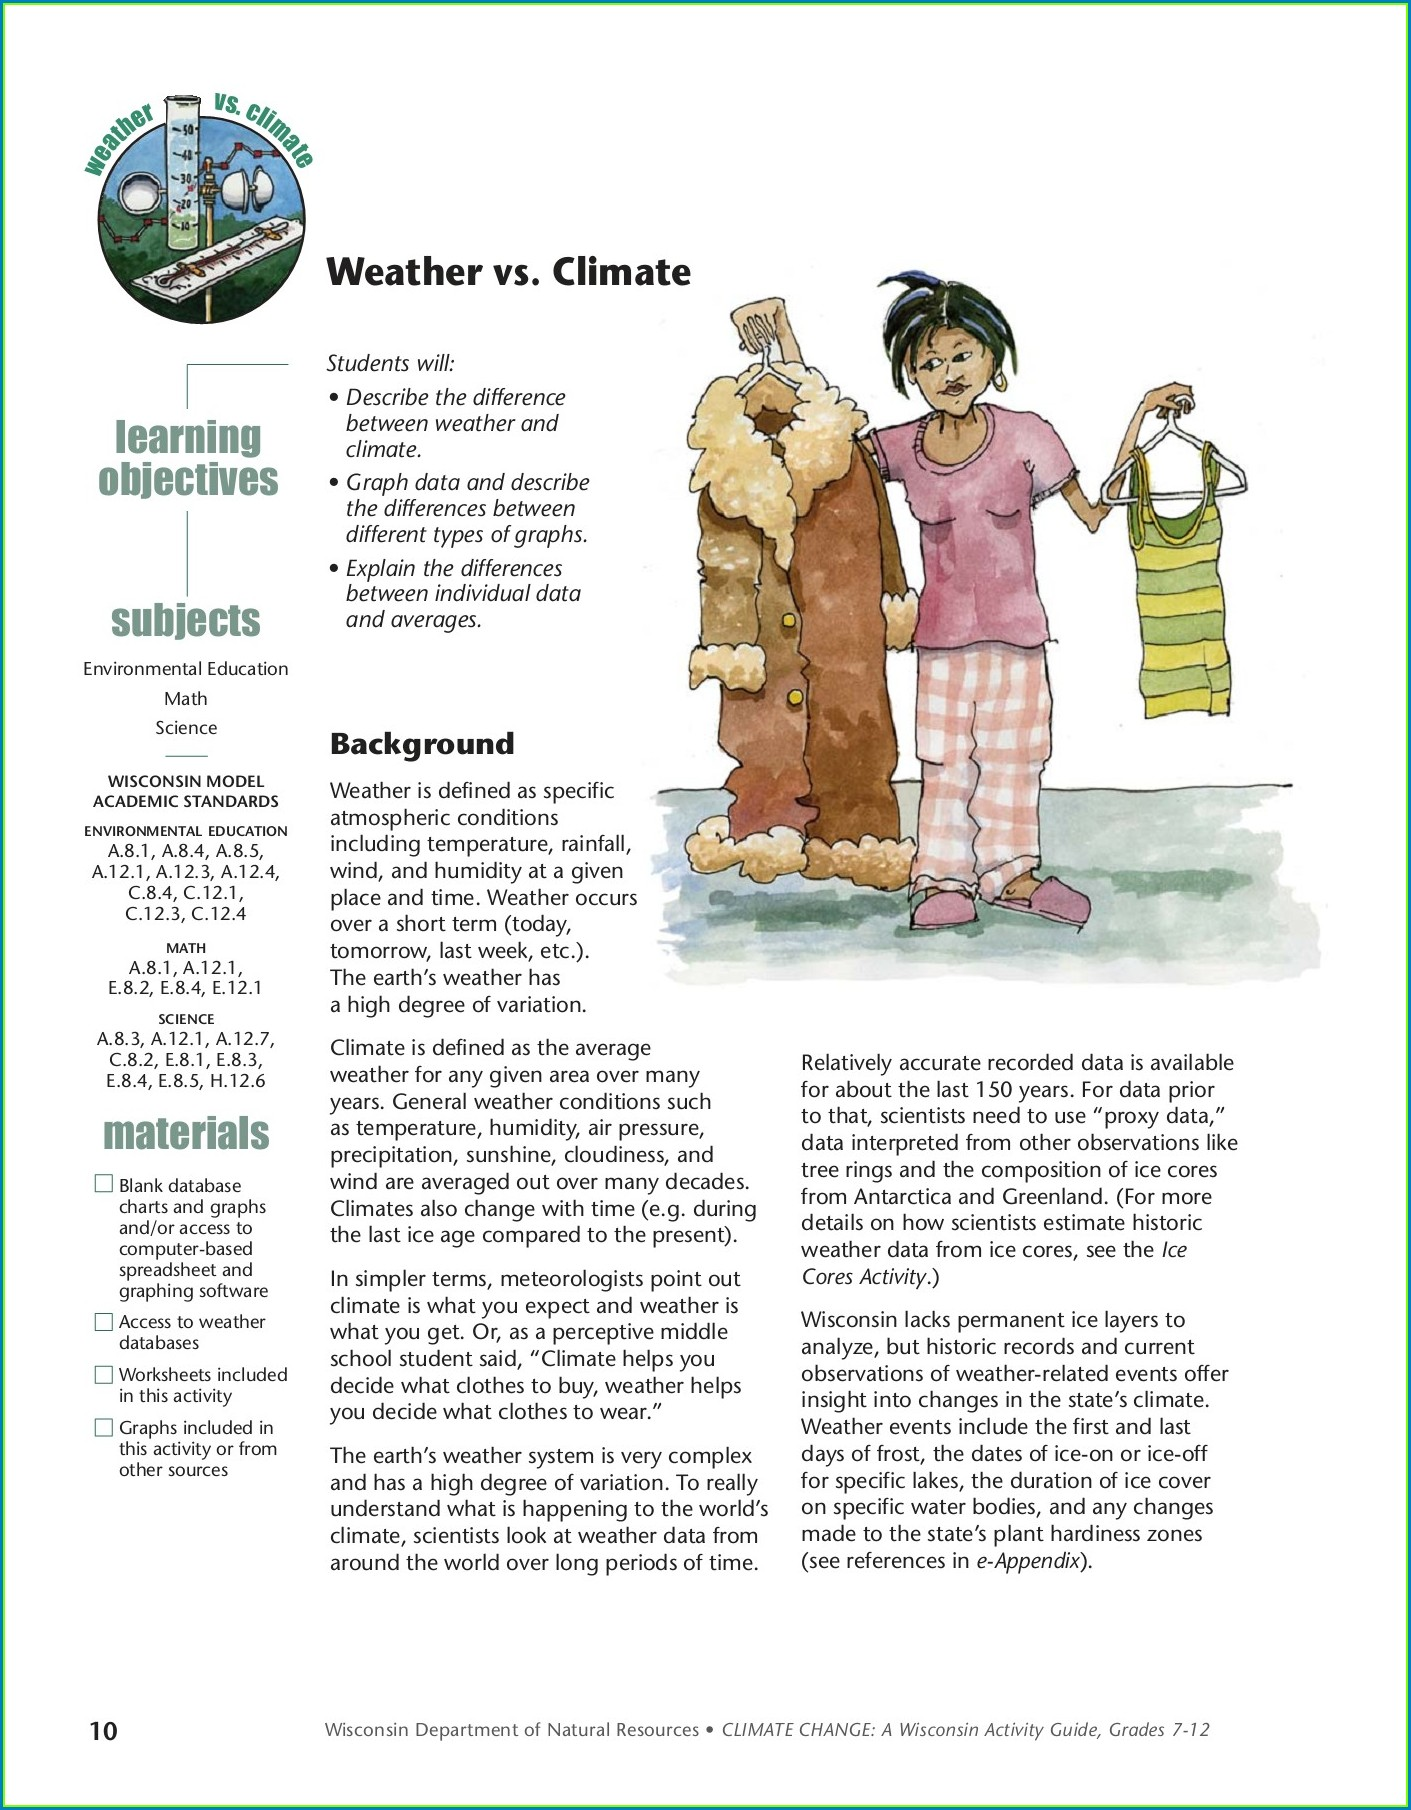 Middle School Weather Vs Climate Worksheet